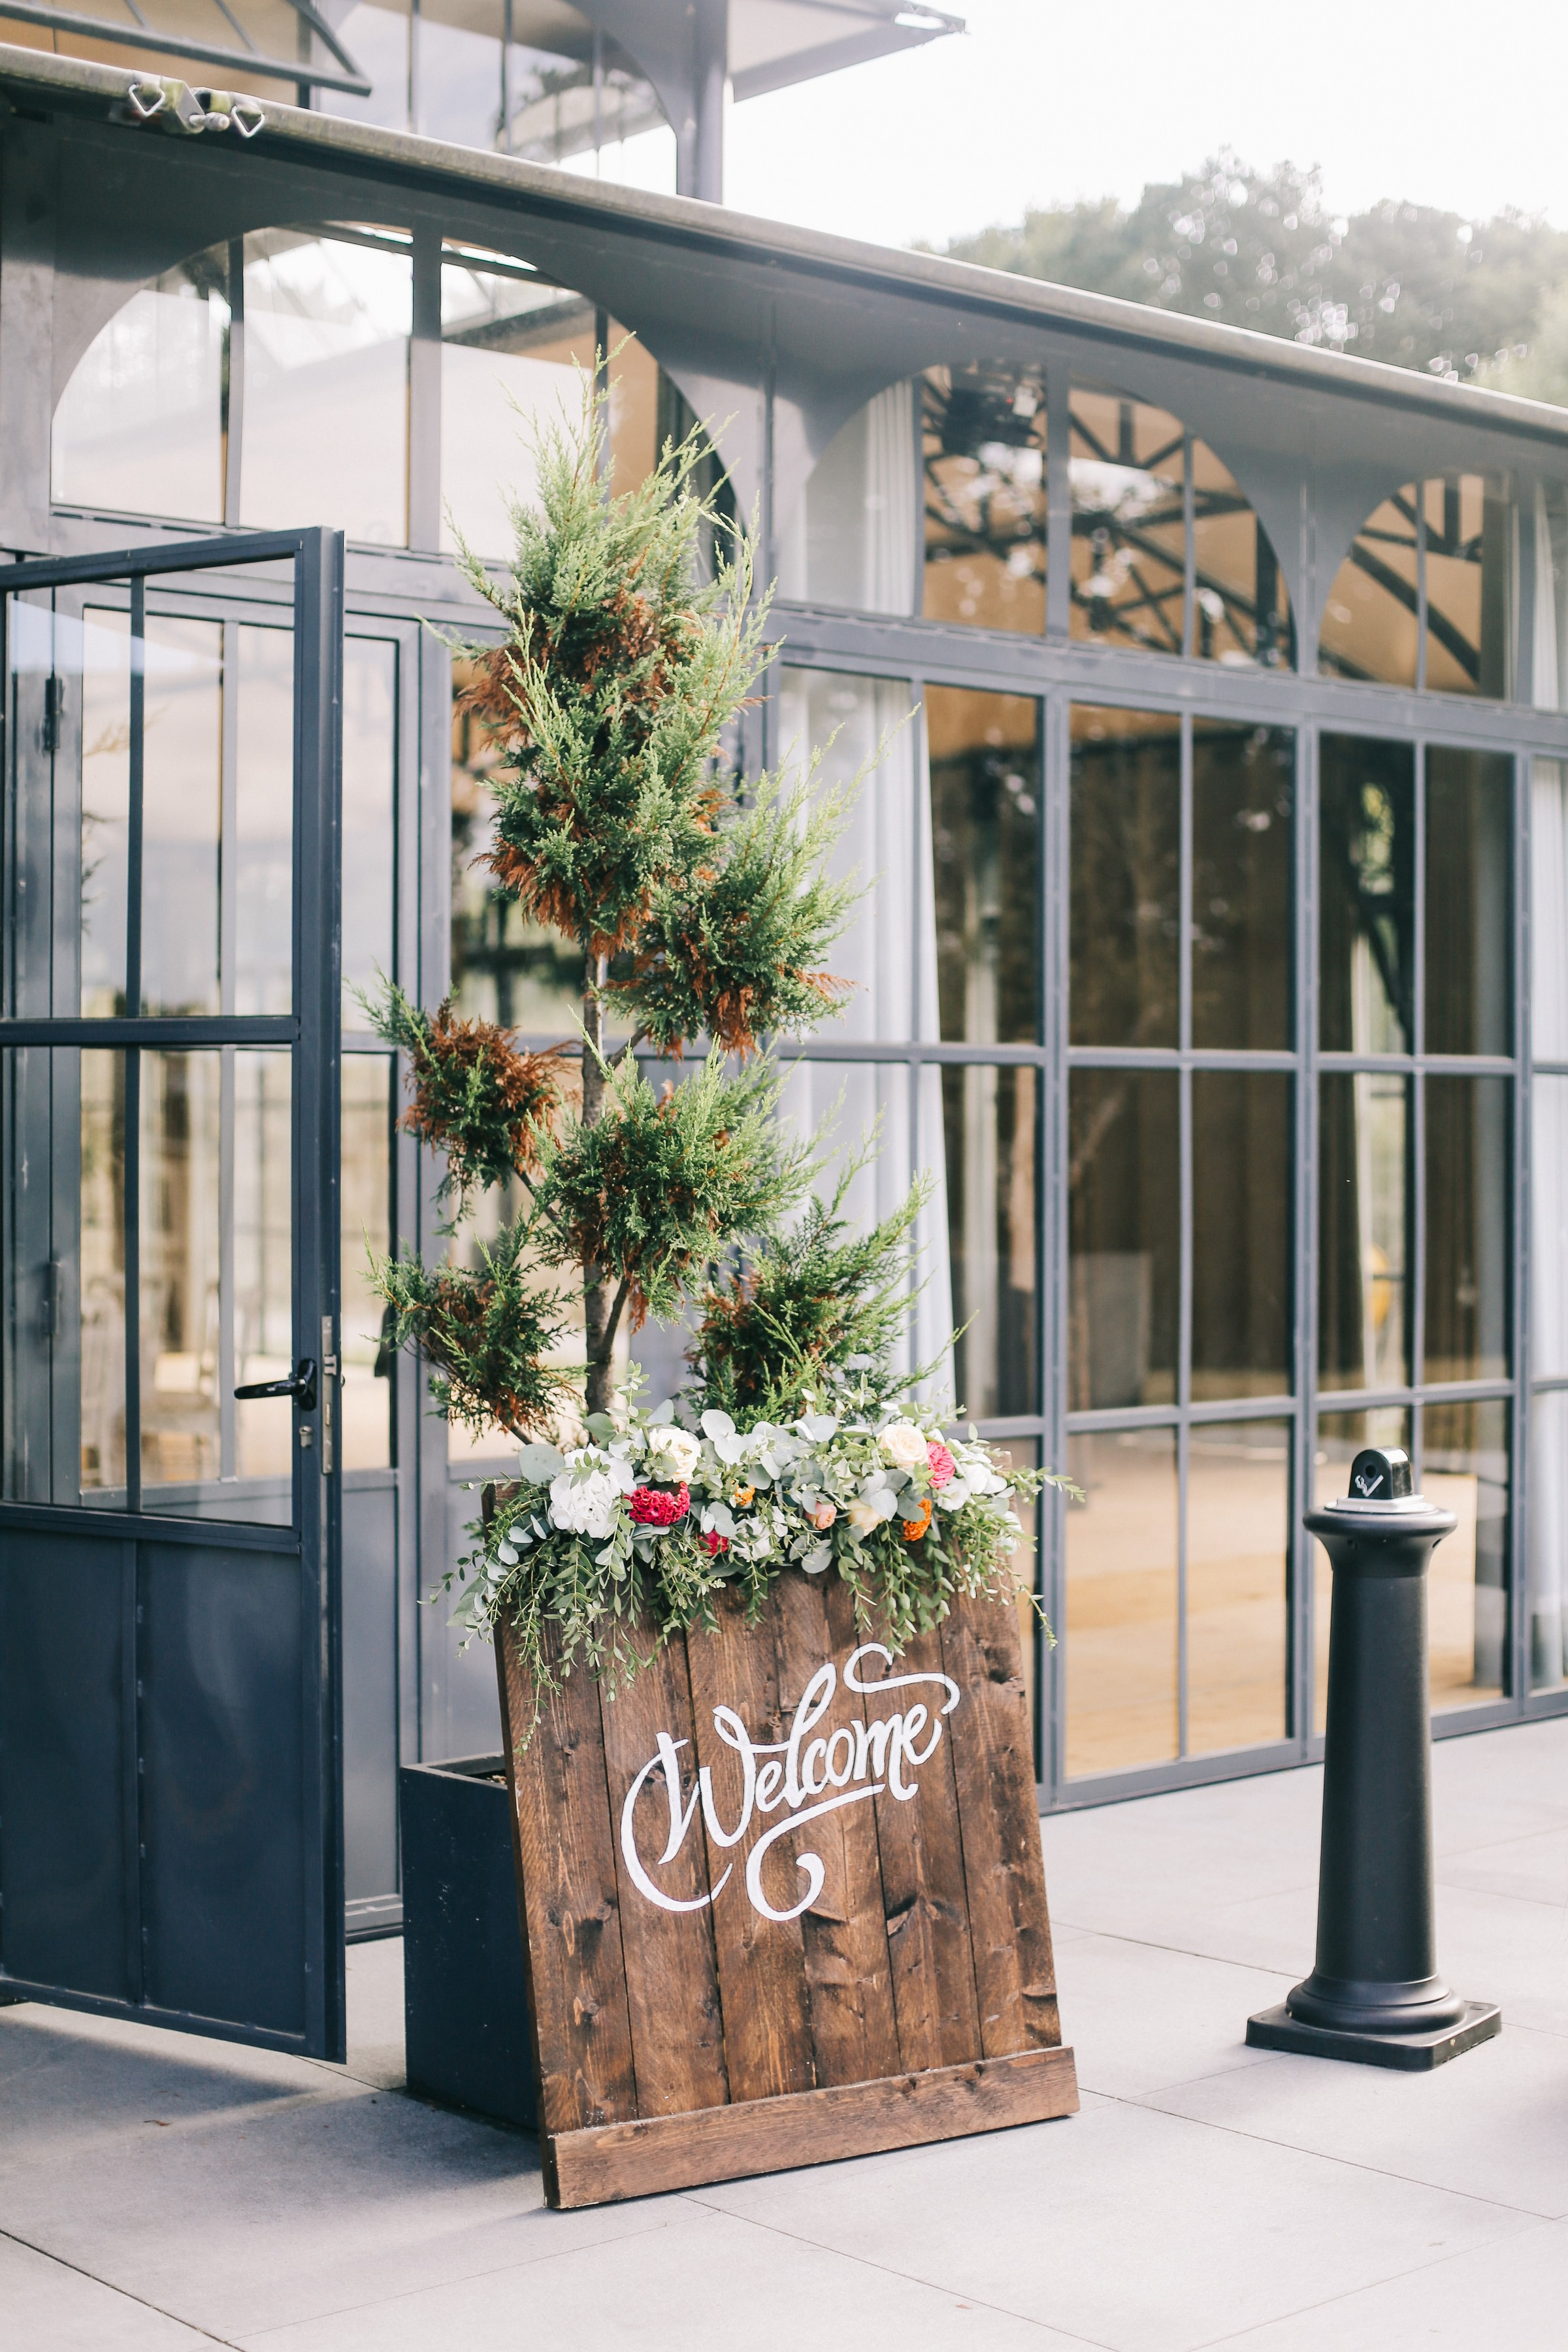 welcome wedding decor- photo by Amandine Ropars, france